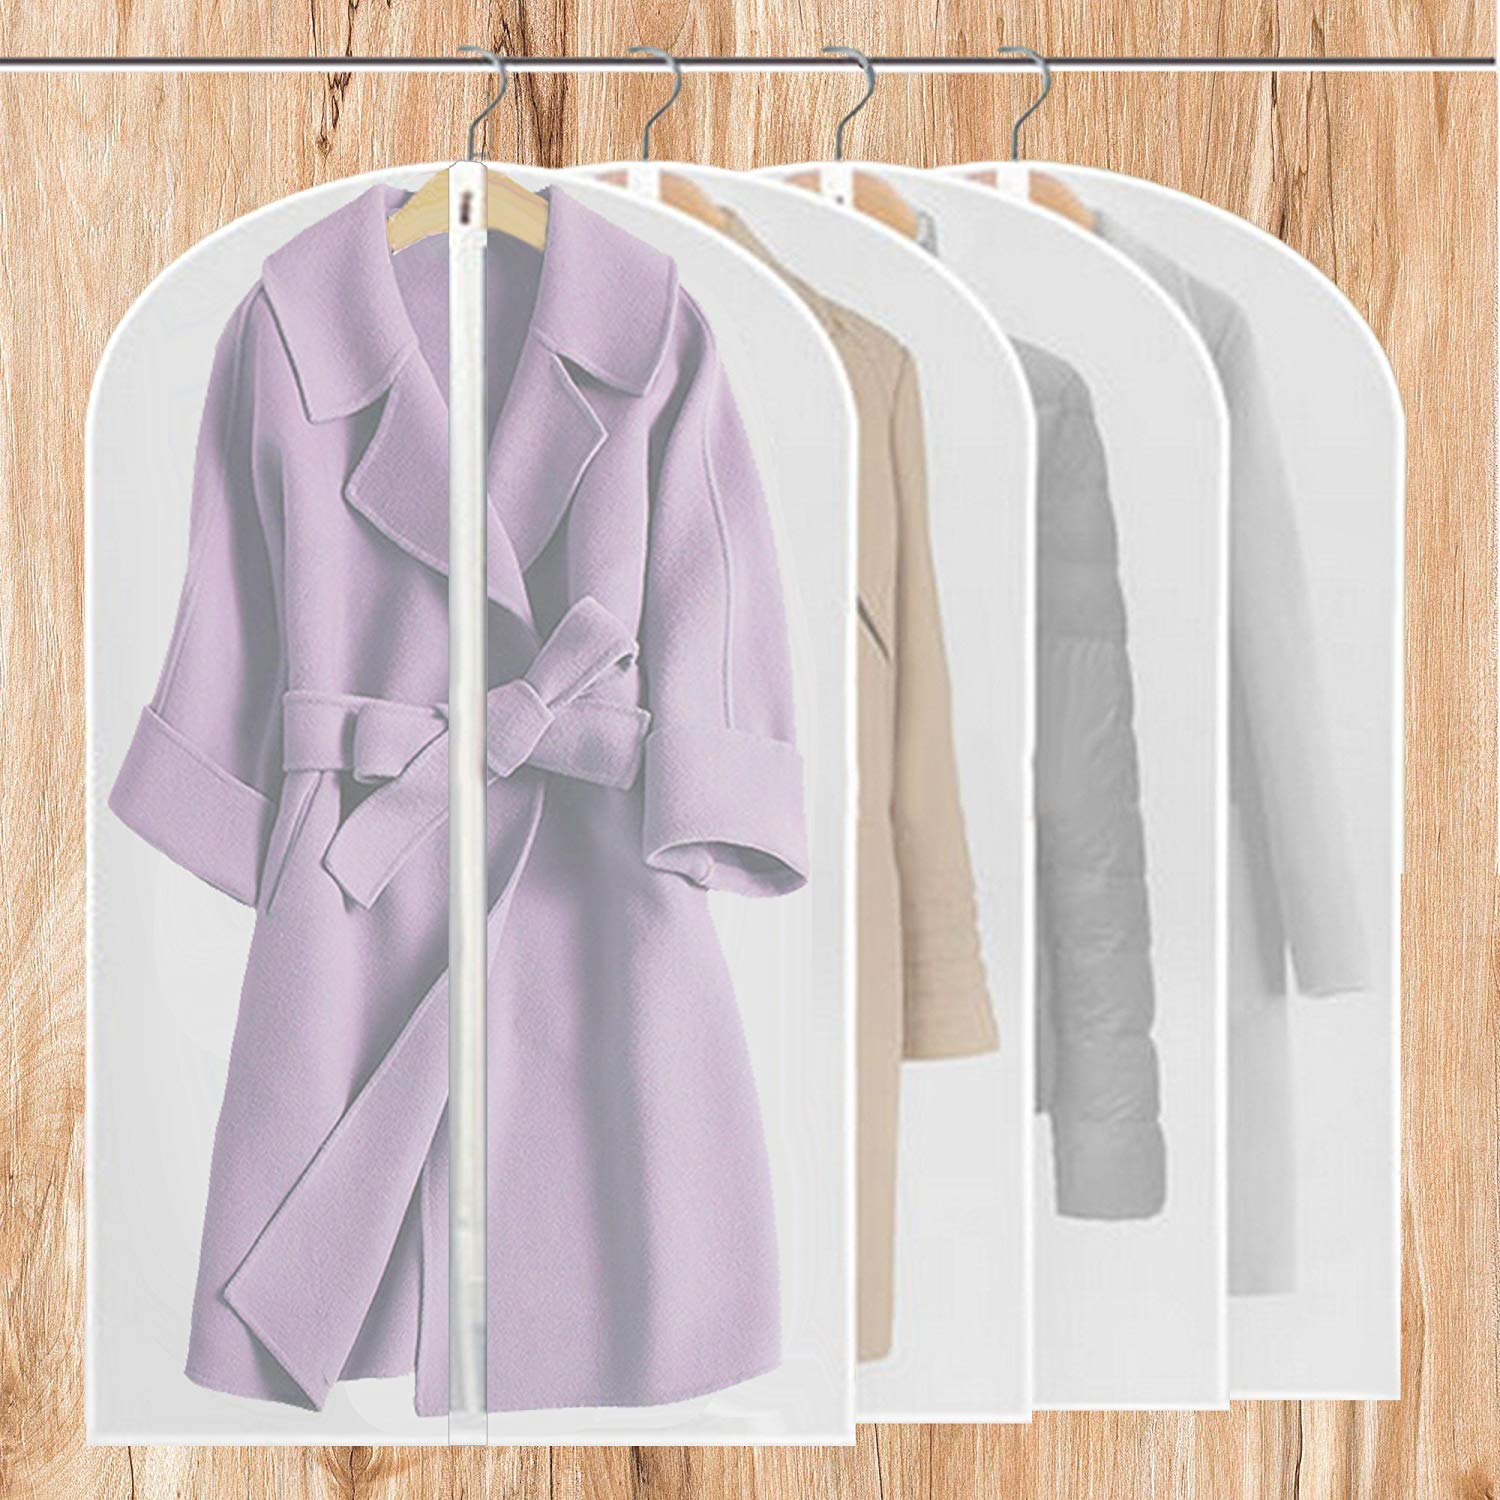 Soft sturdy (Upgraded Version) PEVA 6 Pack Clear Garment Bag With Zipper For Storage Clothes,Travel,Moth Proof Garment Bags,And Free 2 Pack Drawstring Shoe Bags